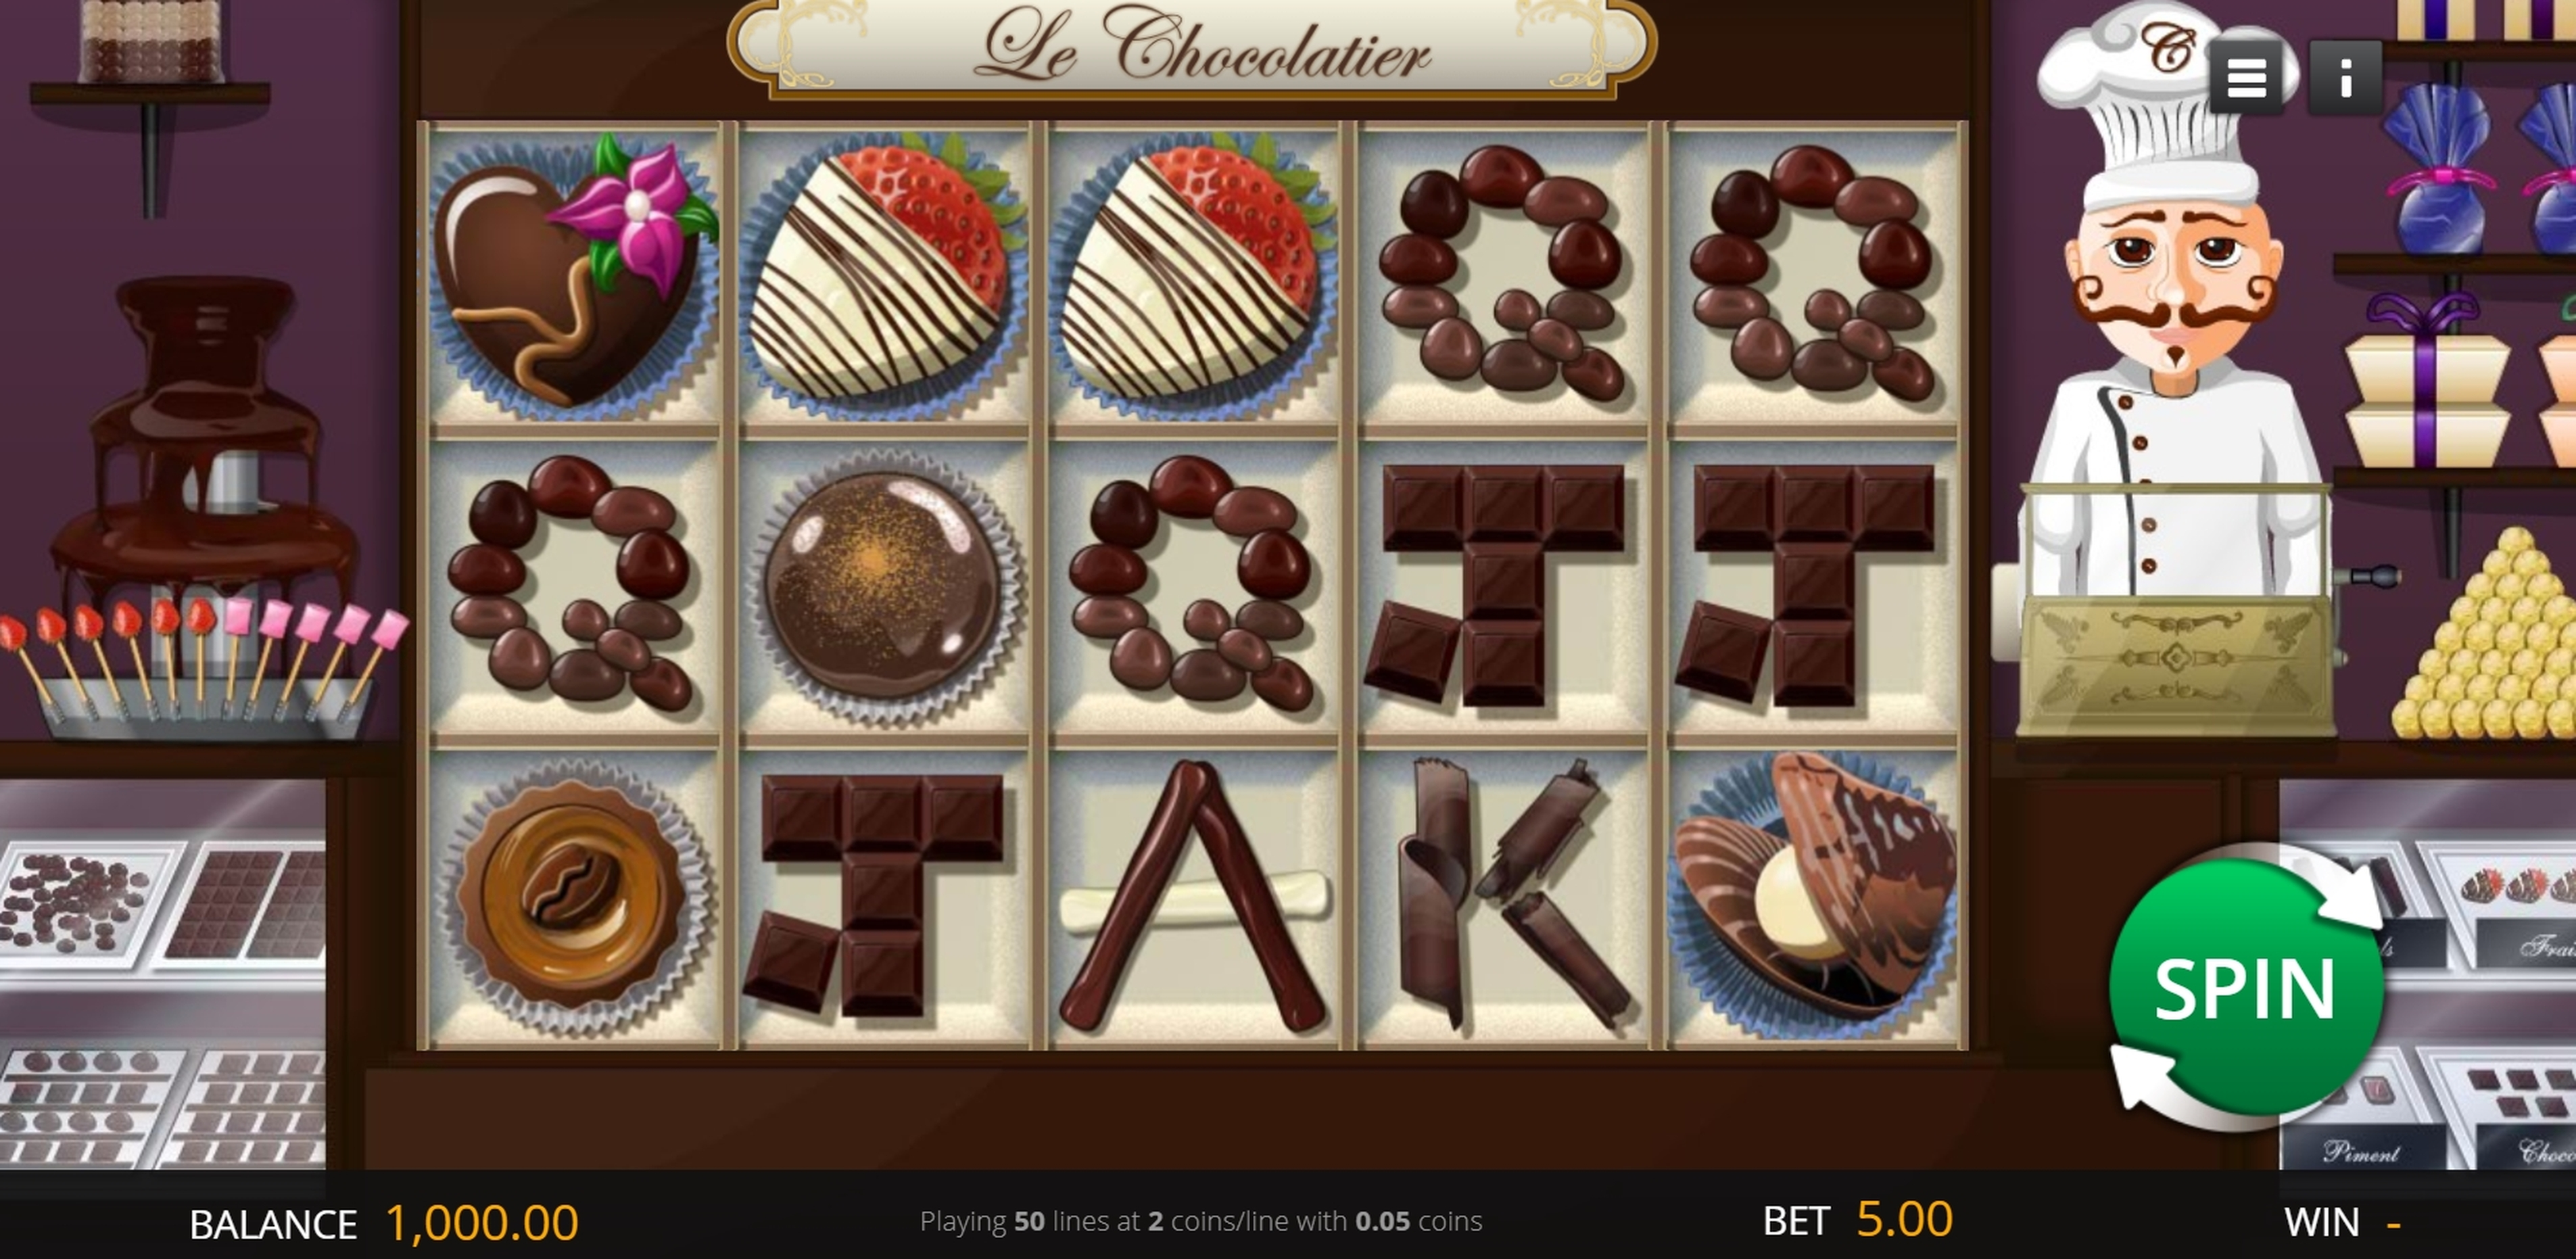 Reels in Le Chocolatier (Genii) Slot Game by Genii